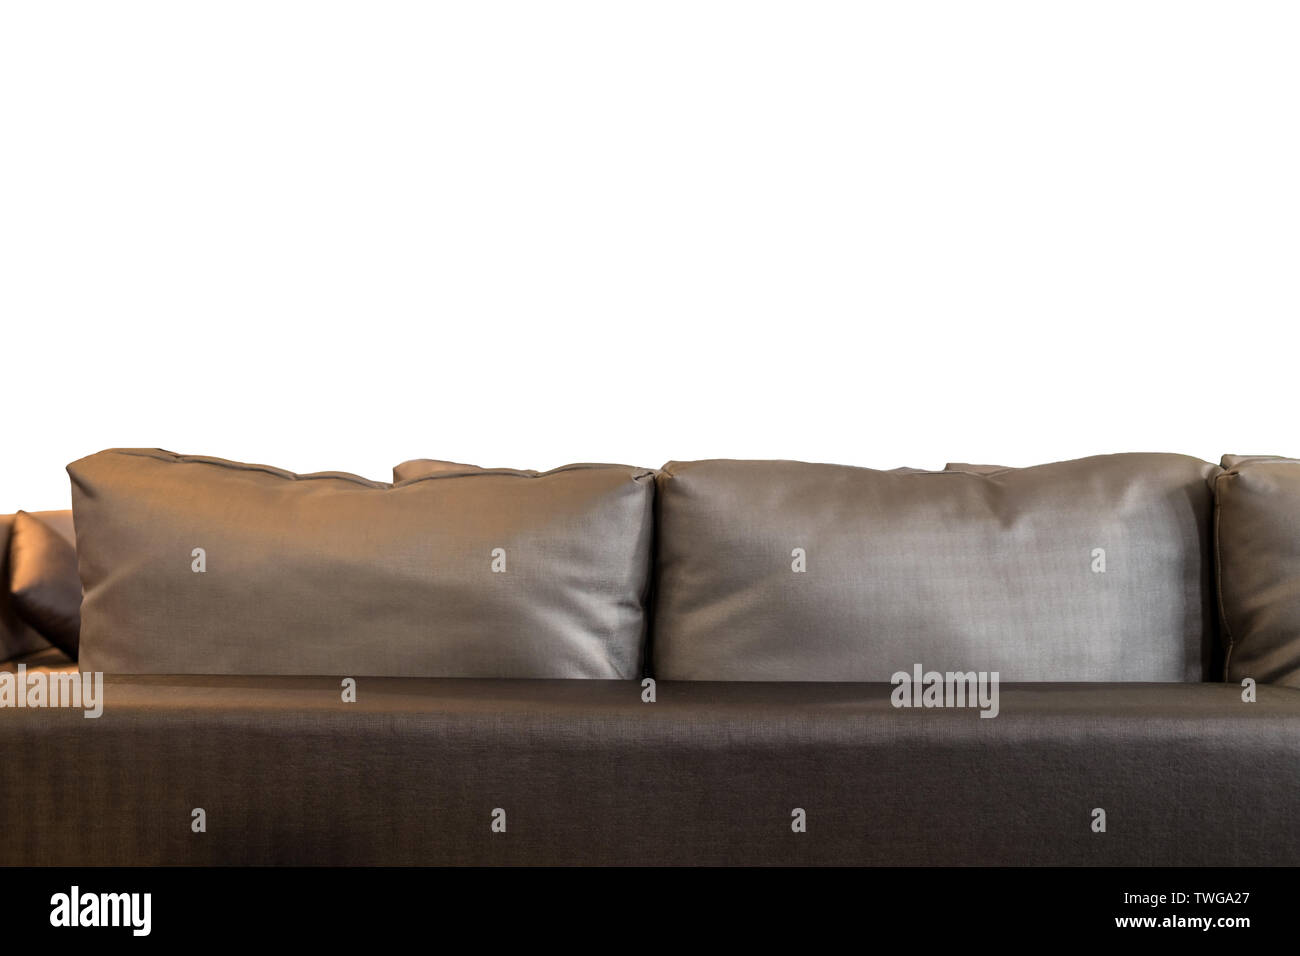 Back of sofa in living room on white background - Stock Image